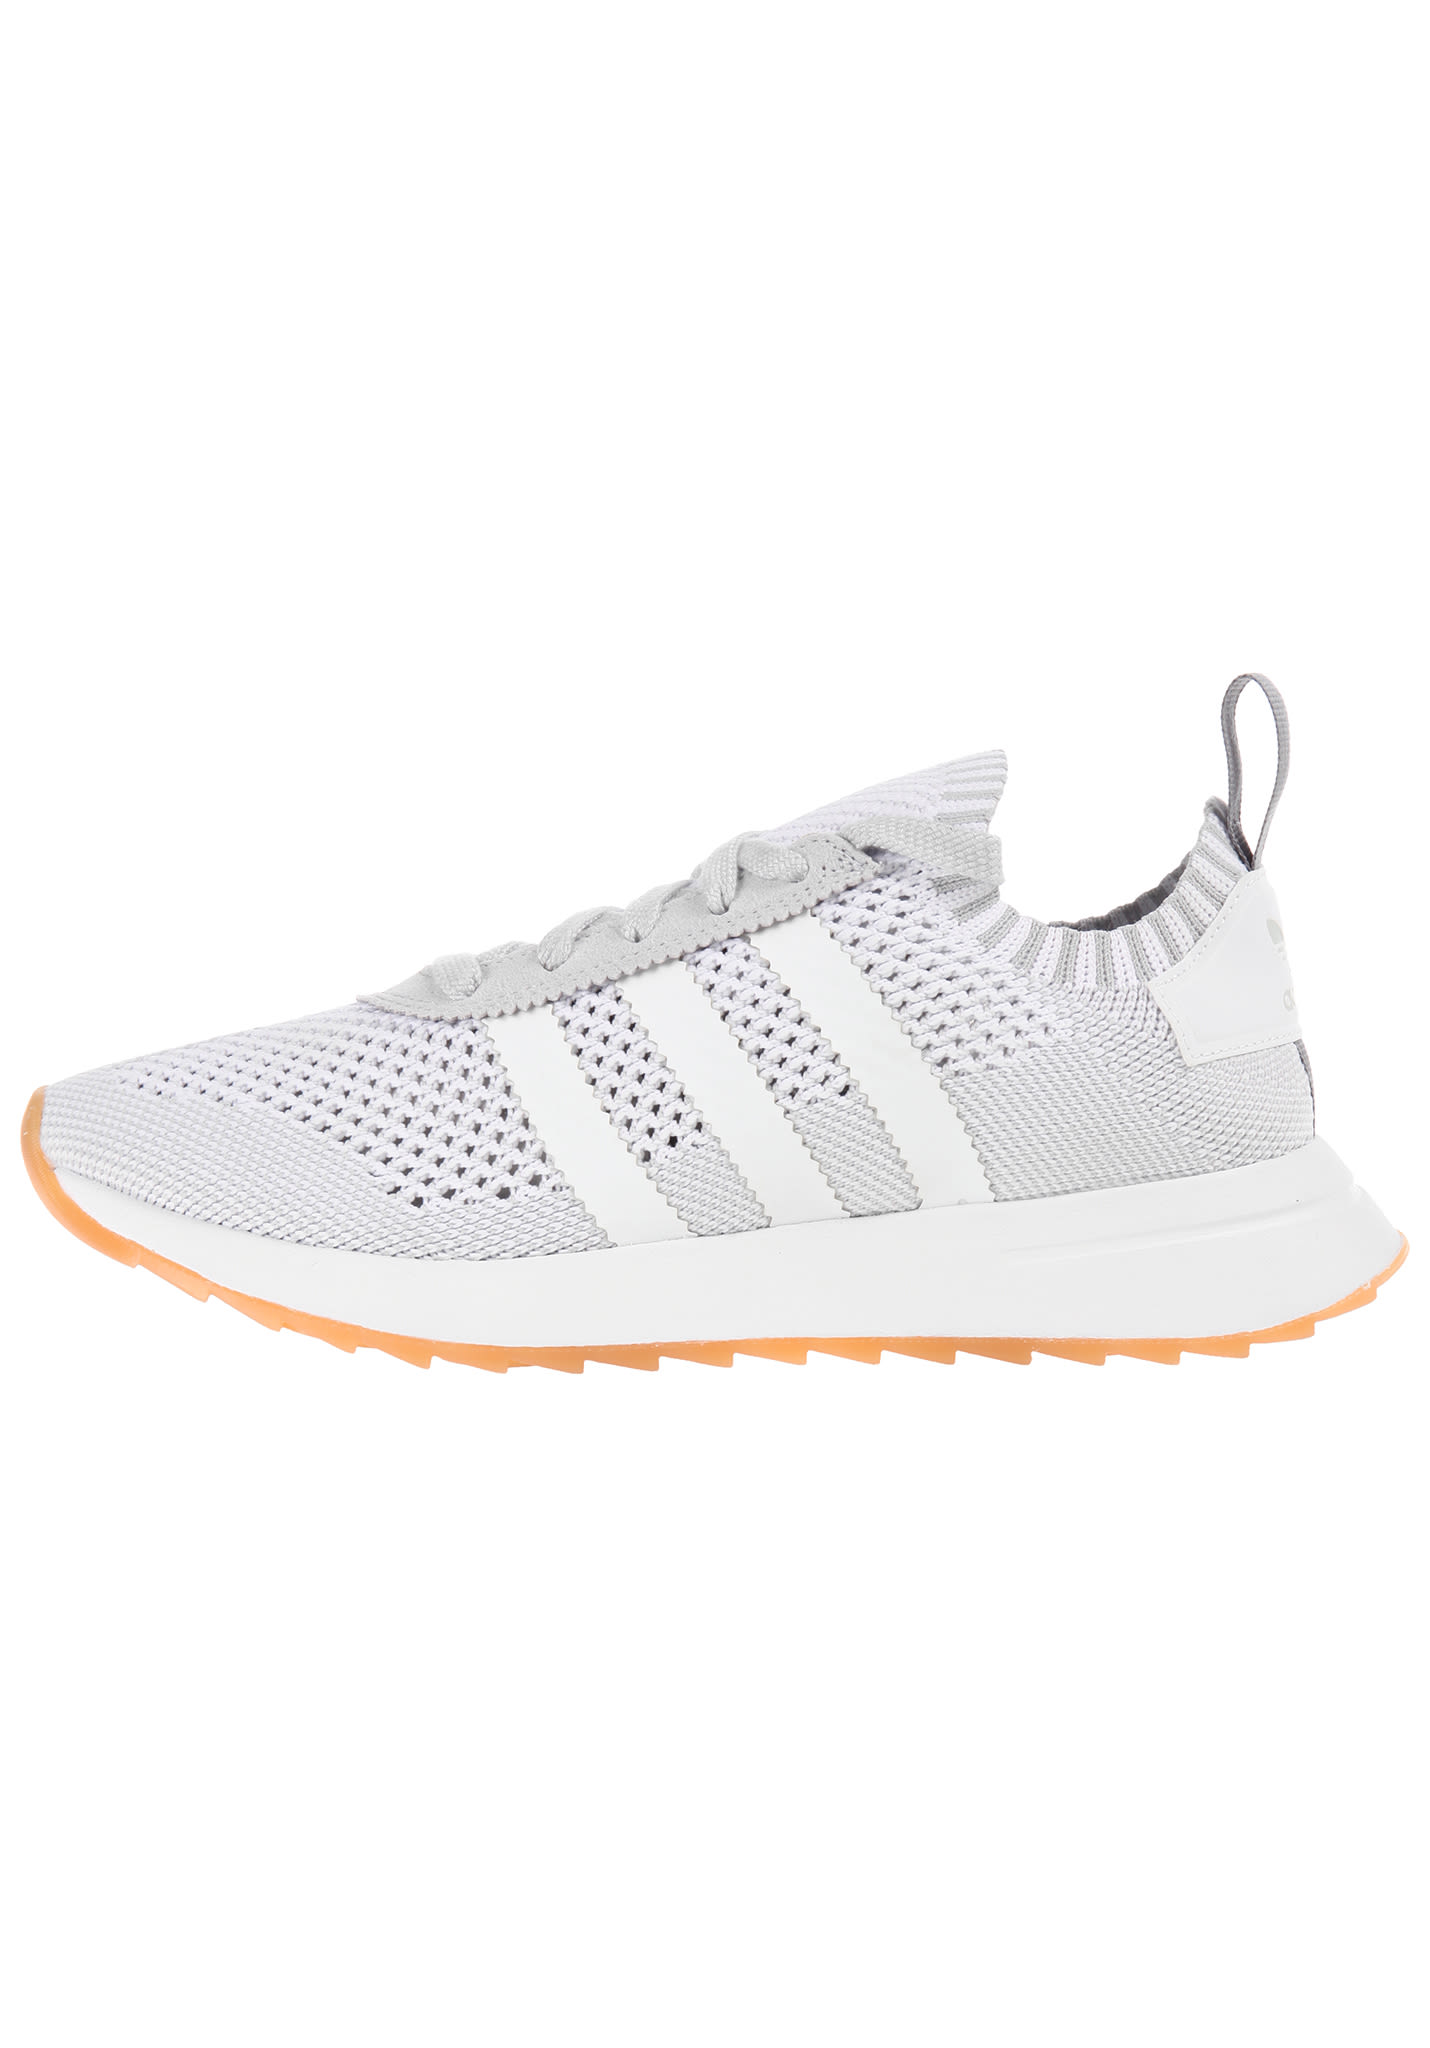 best wholesaler 910ce f2aee ADIDAS ORIGINALS Flashback Primeknit - Sneakers for Women - Grey - Planet  Sports